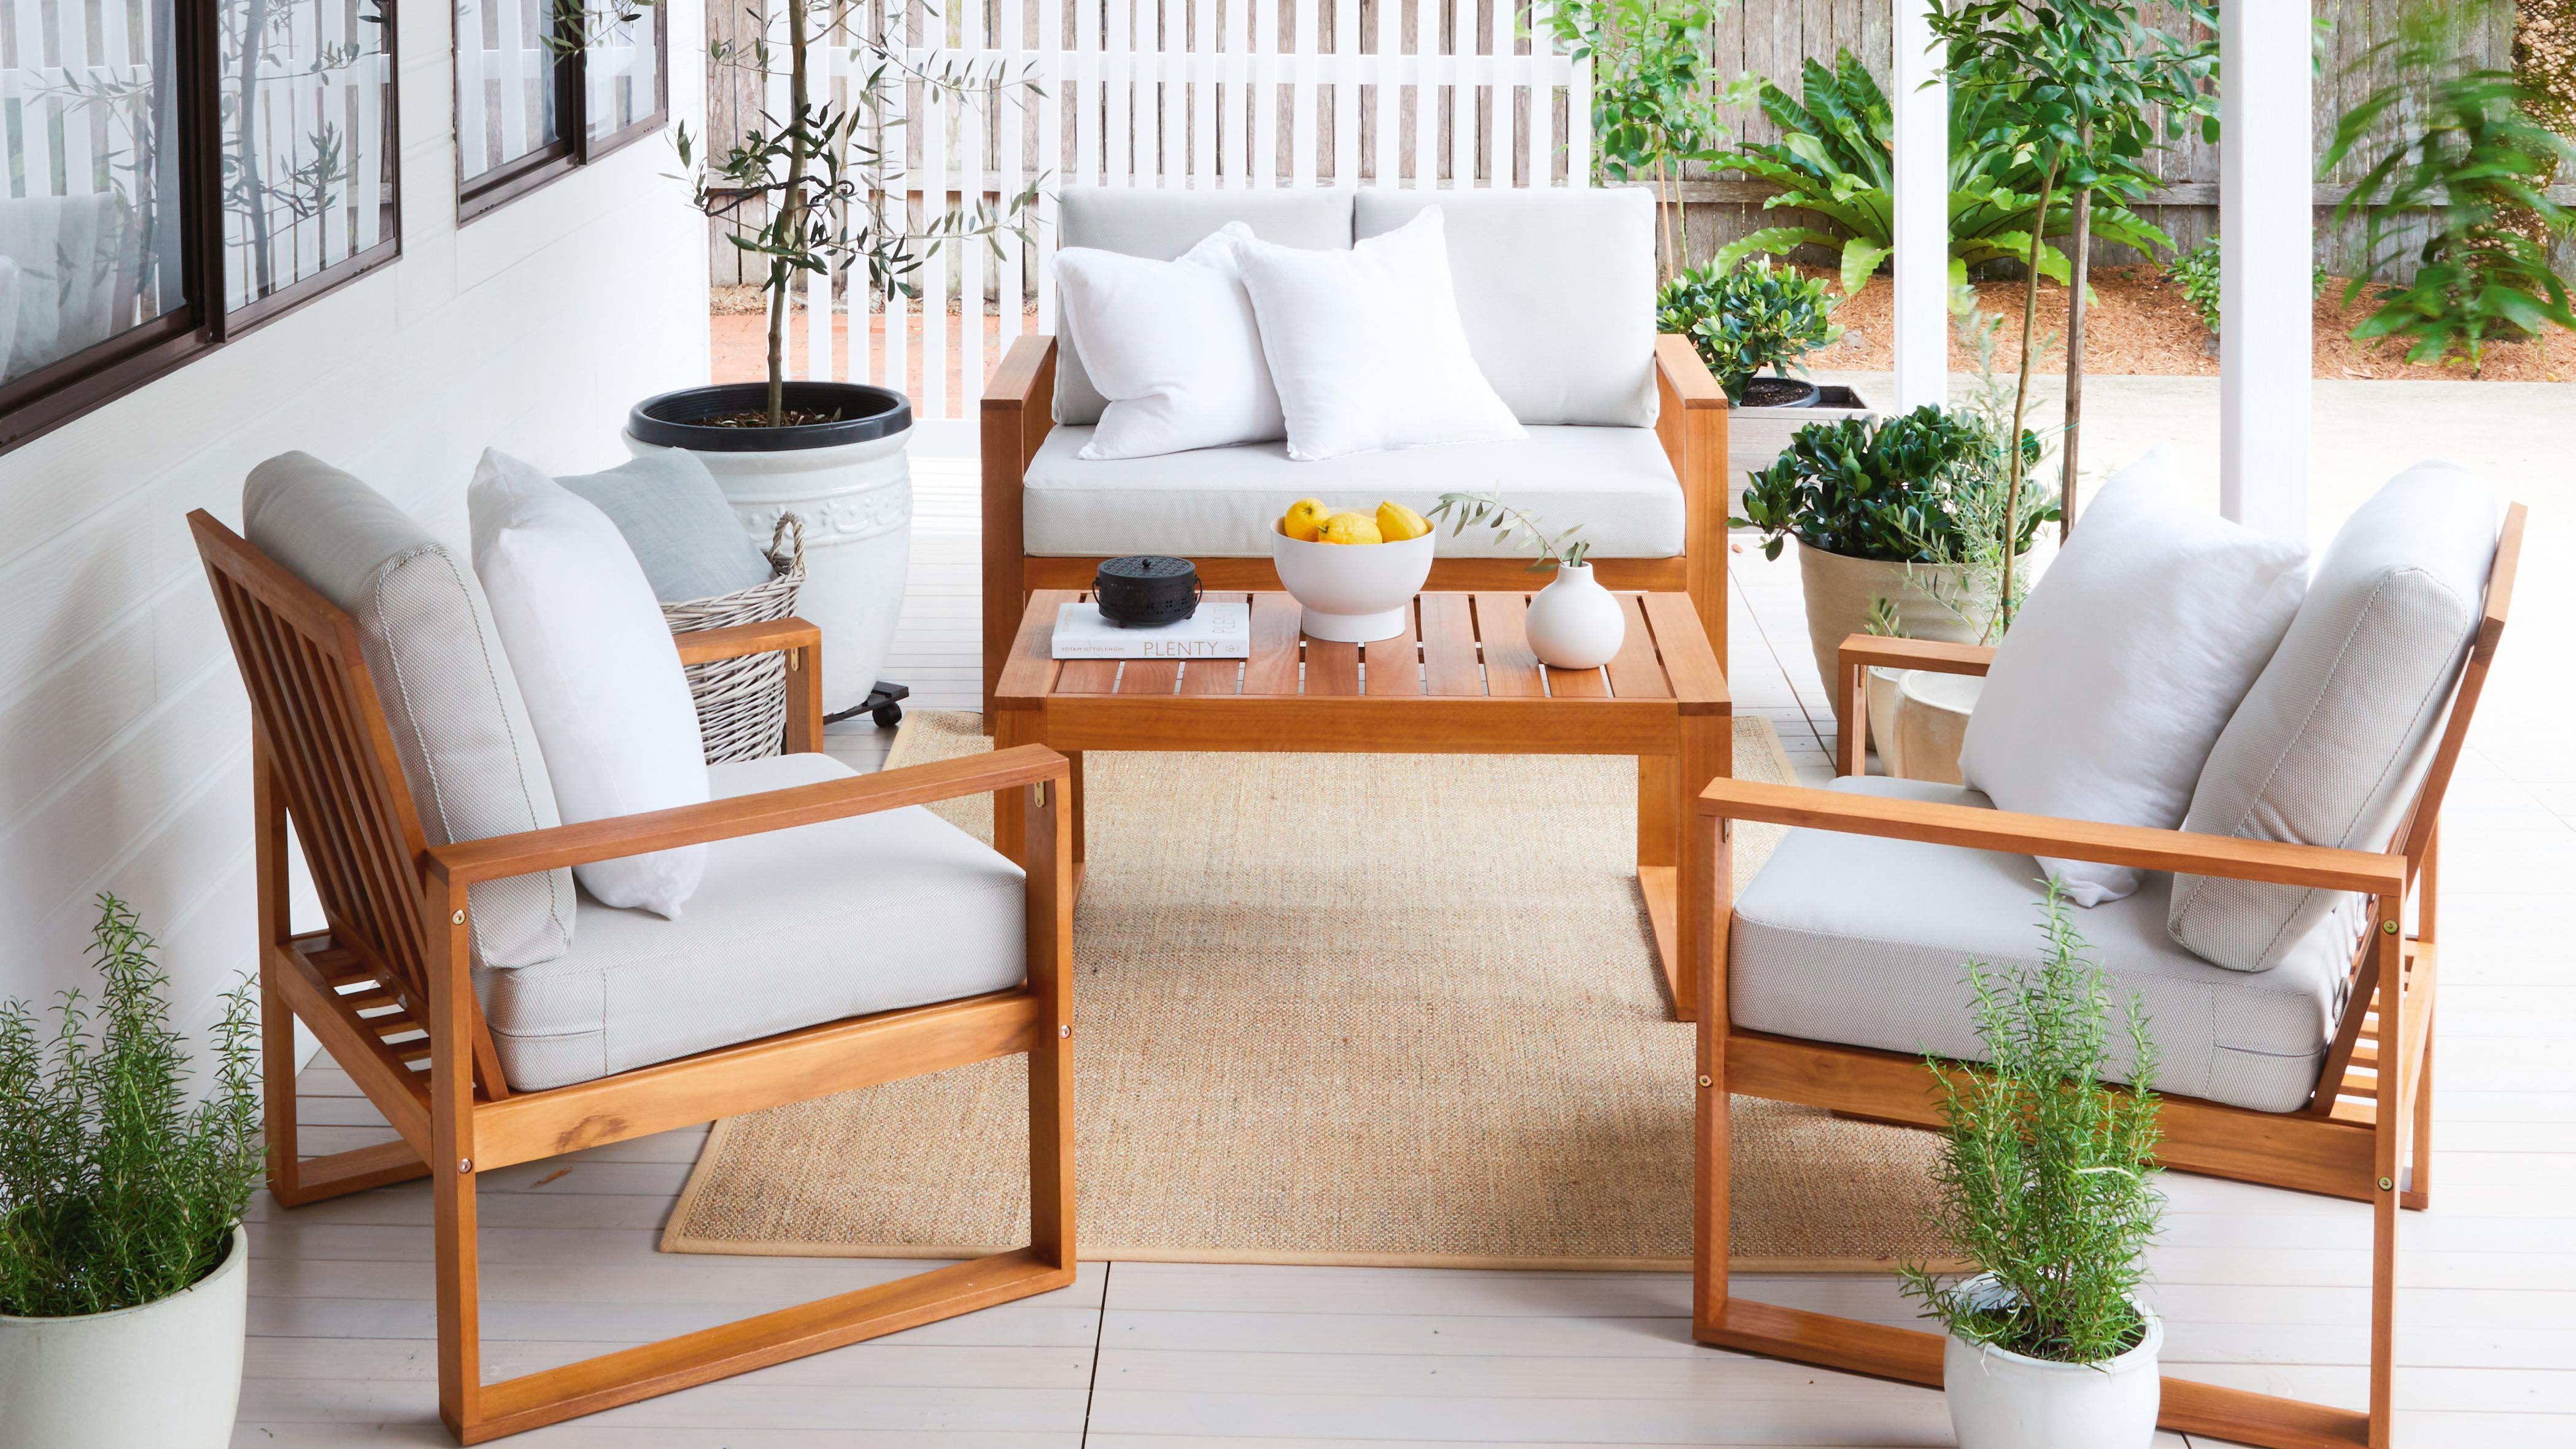 Deck with timber outdoor furniture and potted plants